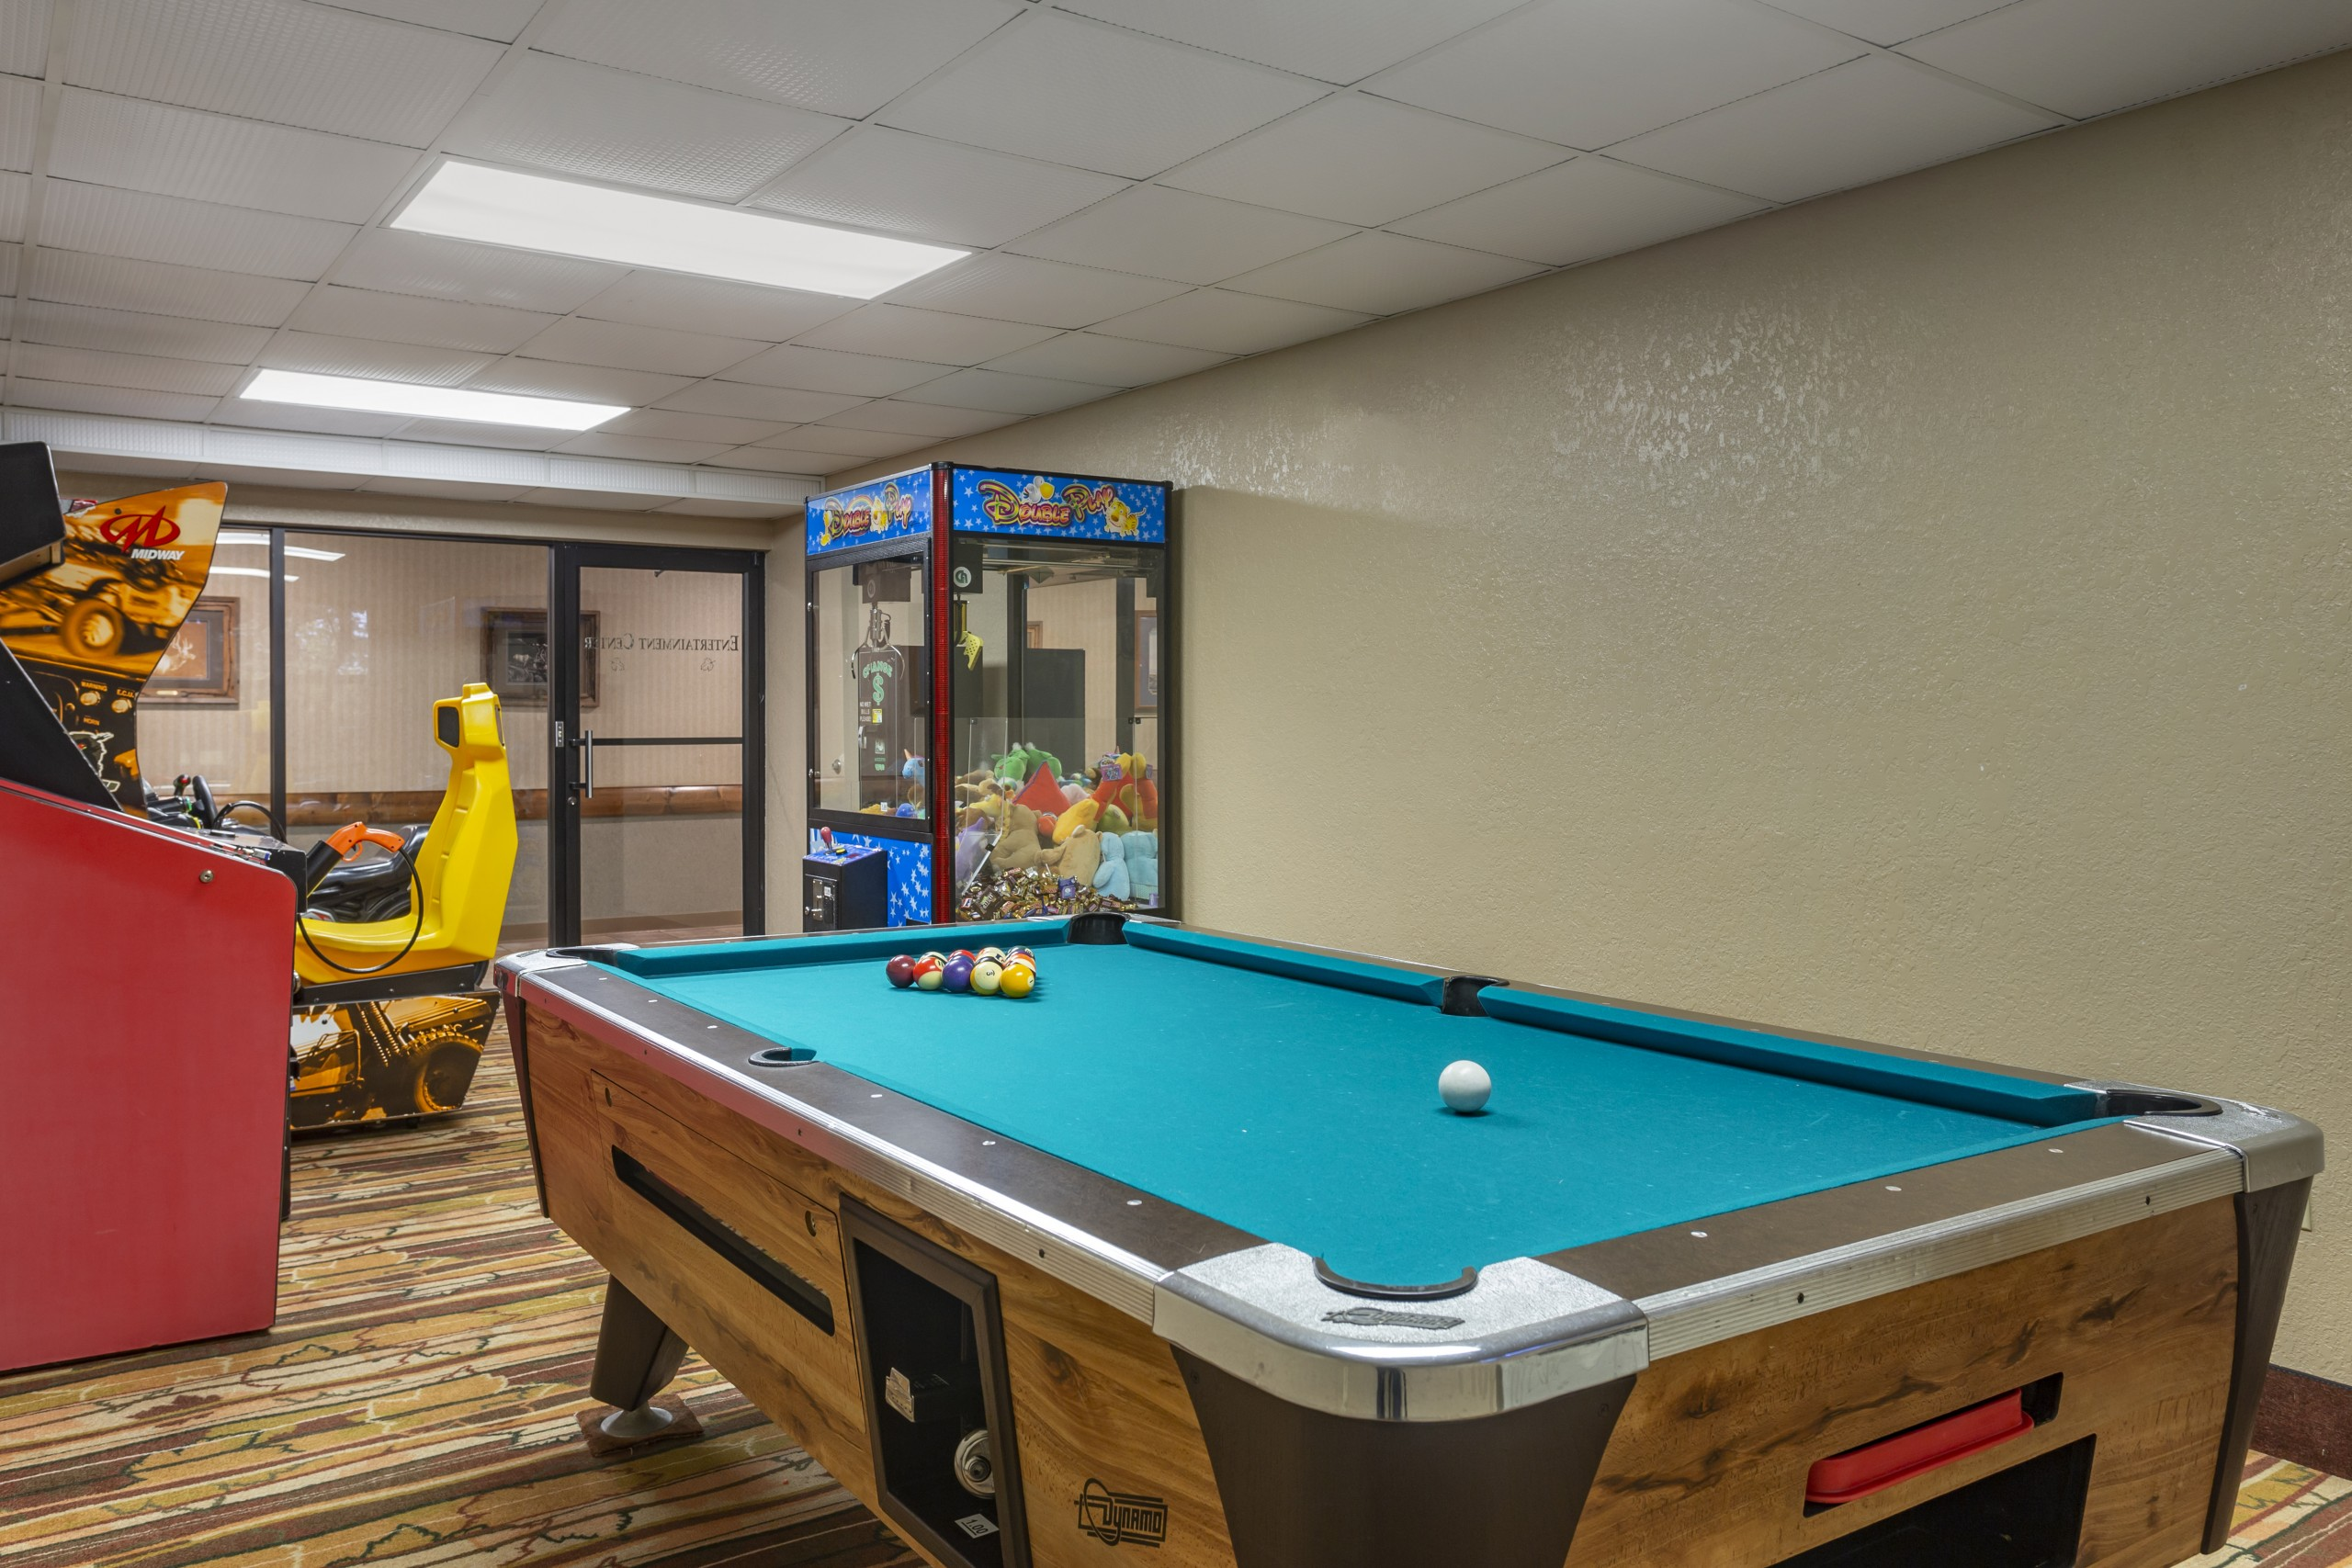 Branson Mo Comfort inn and suites game room pool table